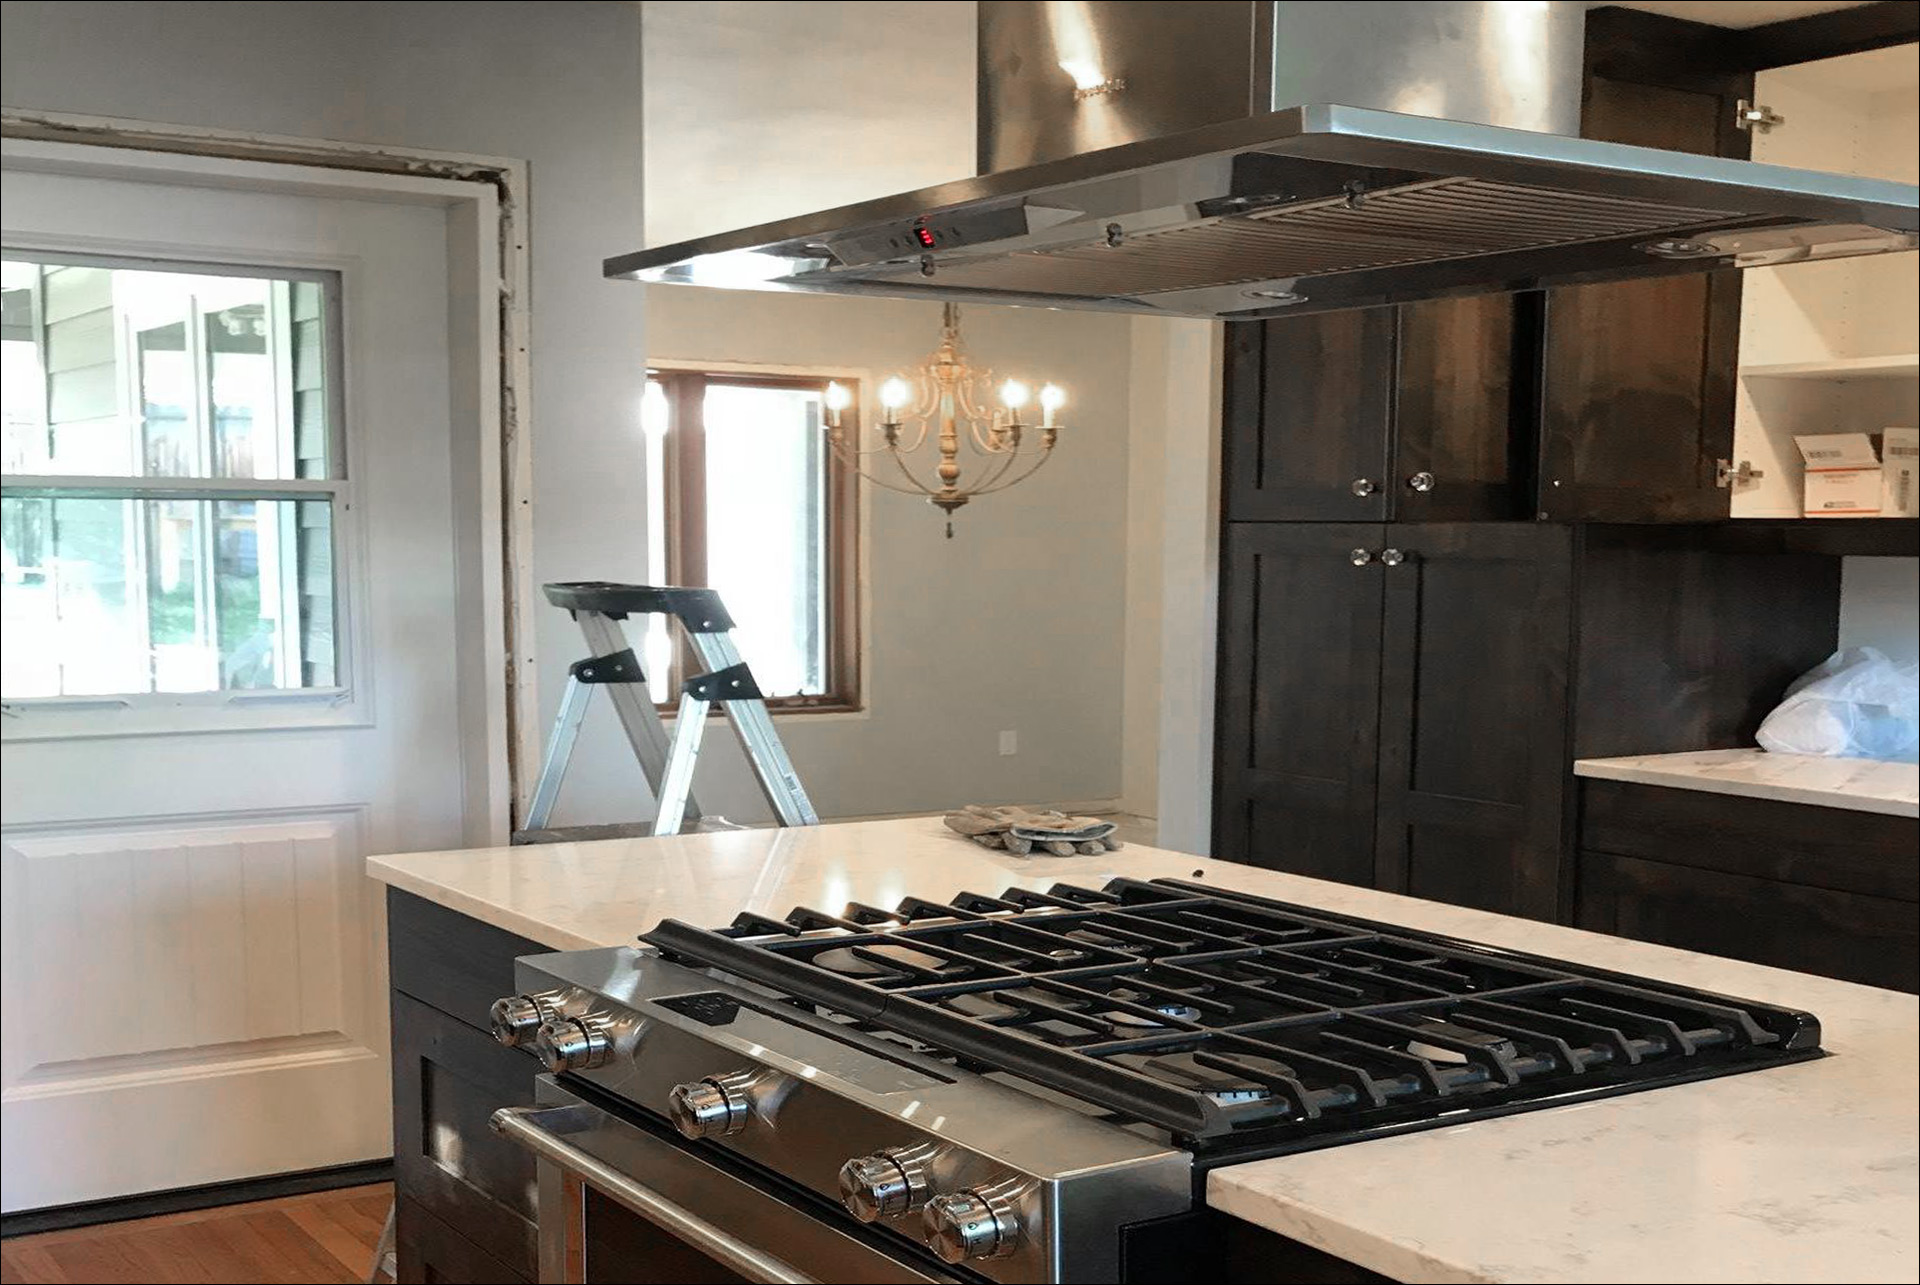 Kitchen Remodel Dark Wood Cabinets White Marble Countertops Range in Island 1